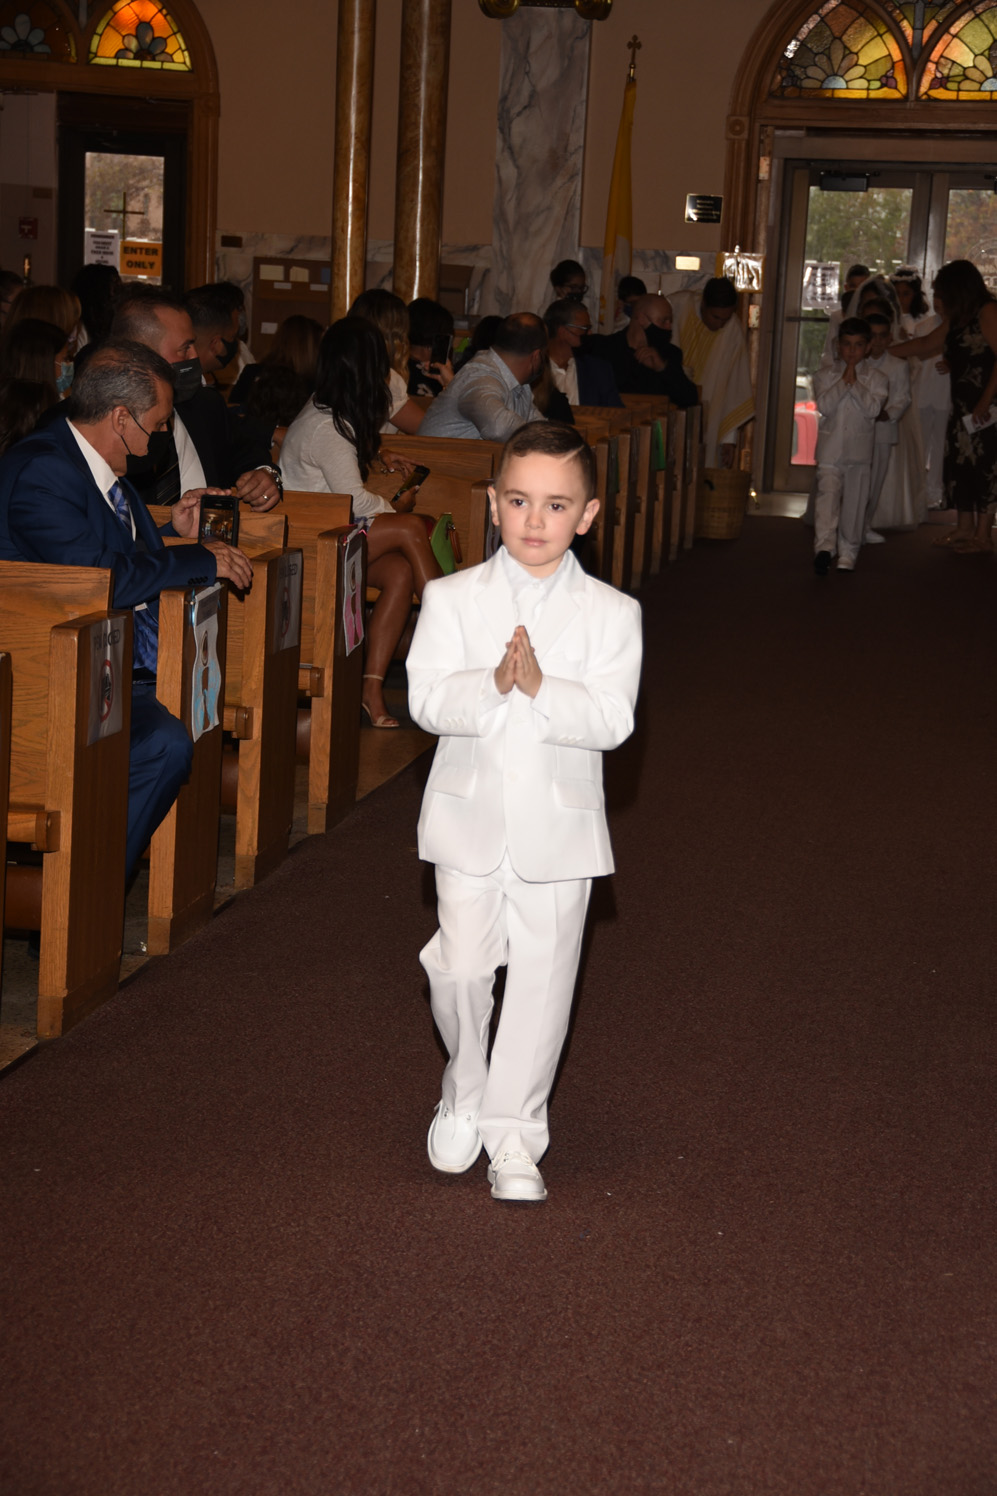 FIRST-COMMUNION-MAY-2-2021-1001001158